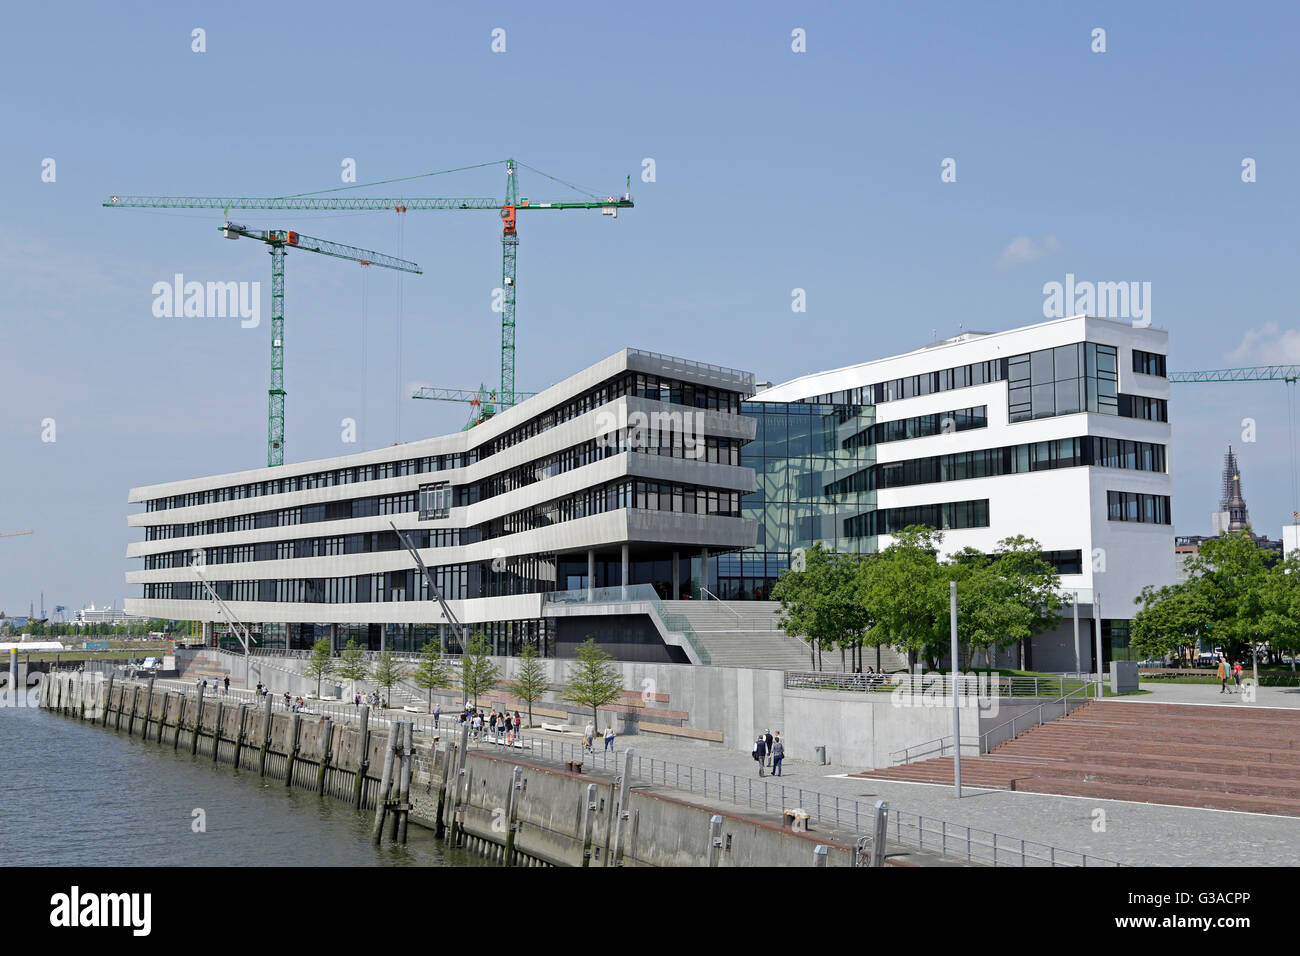 Harbour City University, Hamburg, Germany - Stock Image